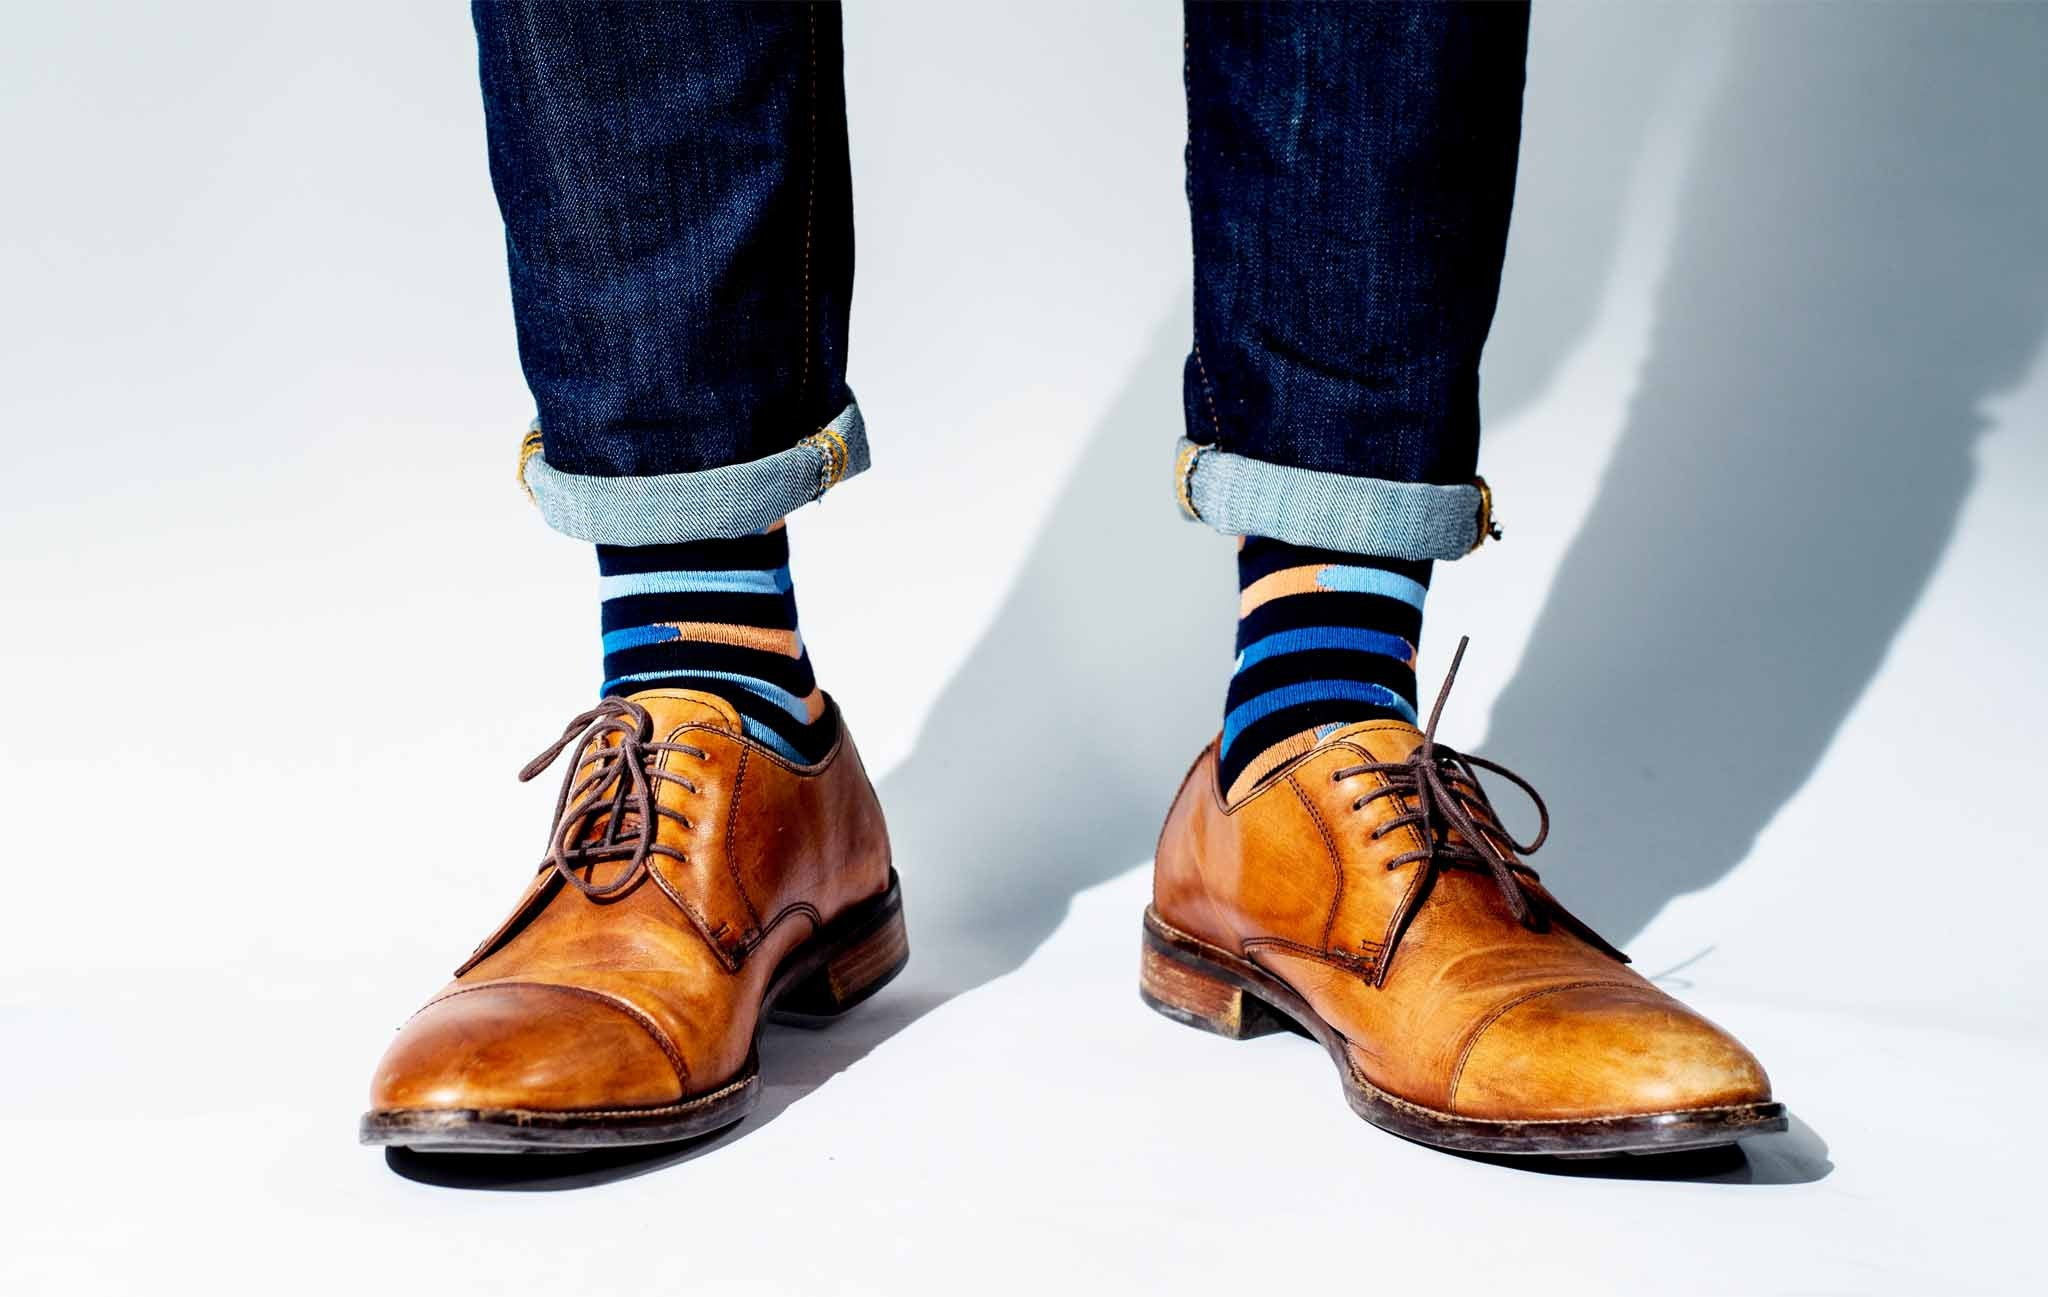 How to Pair Socks and Shoes According to Free People